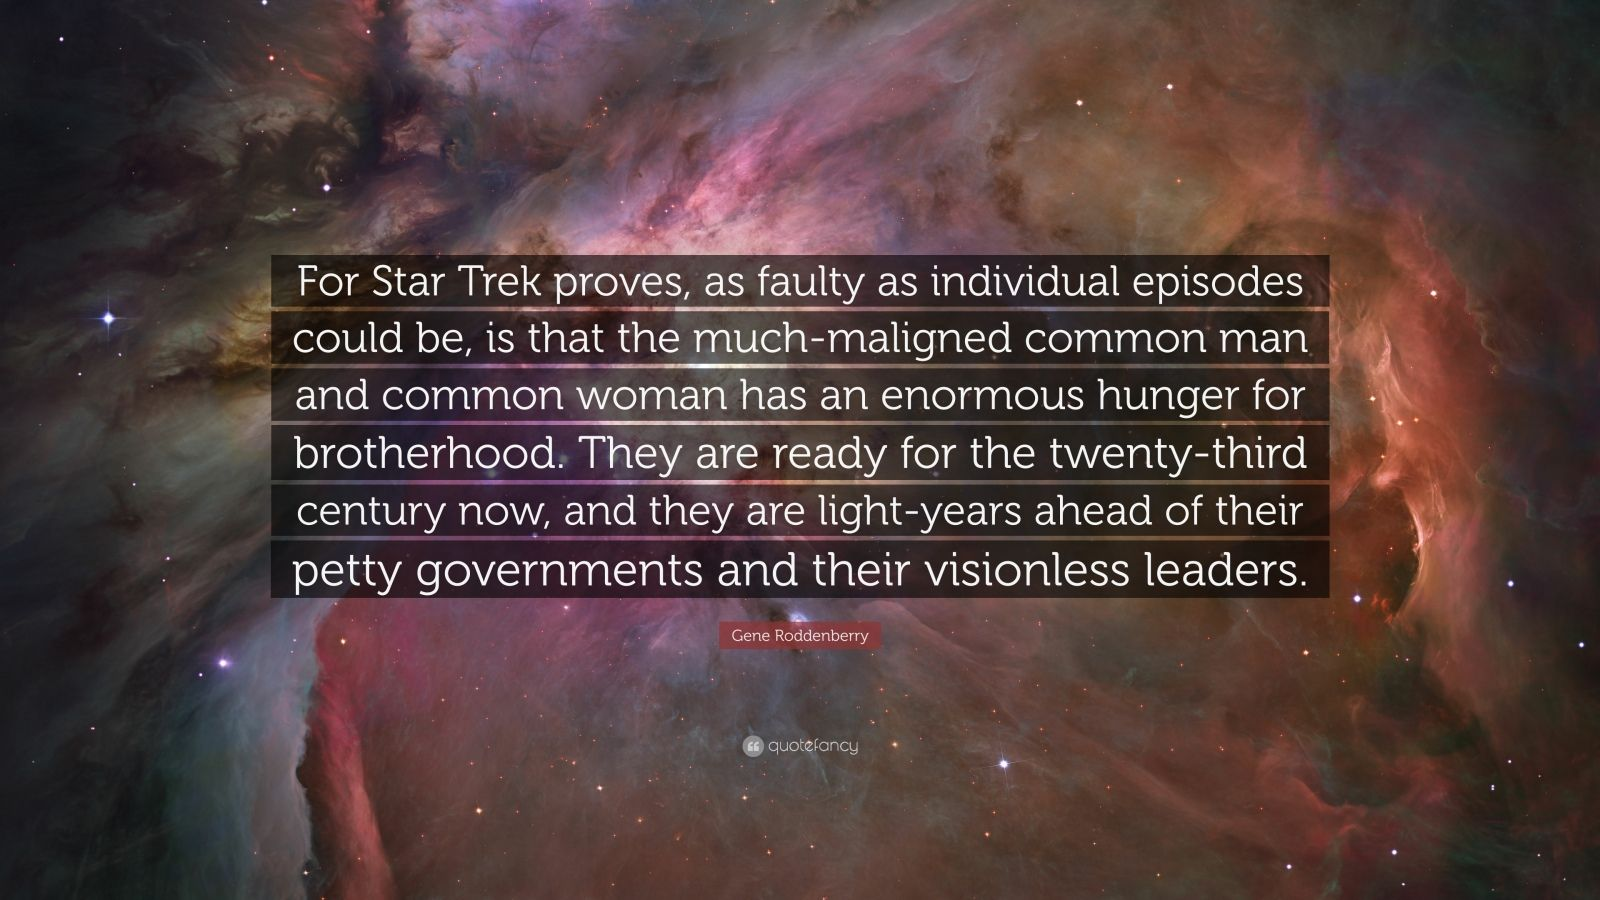 "Gene Roddenberry Quote: ""For Star Trek proves, as faulty as individual episodes could be, is that the much-maligned common man and common woman has an enormous hunger for brotherhood. They are ready for the twenty-third century now, and they are light-years ahead of their petty governments and their visionless leaders."""